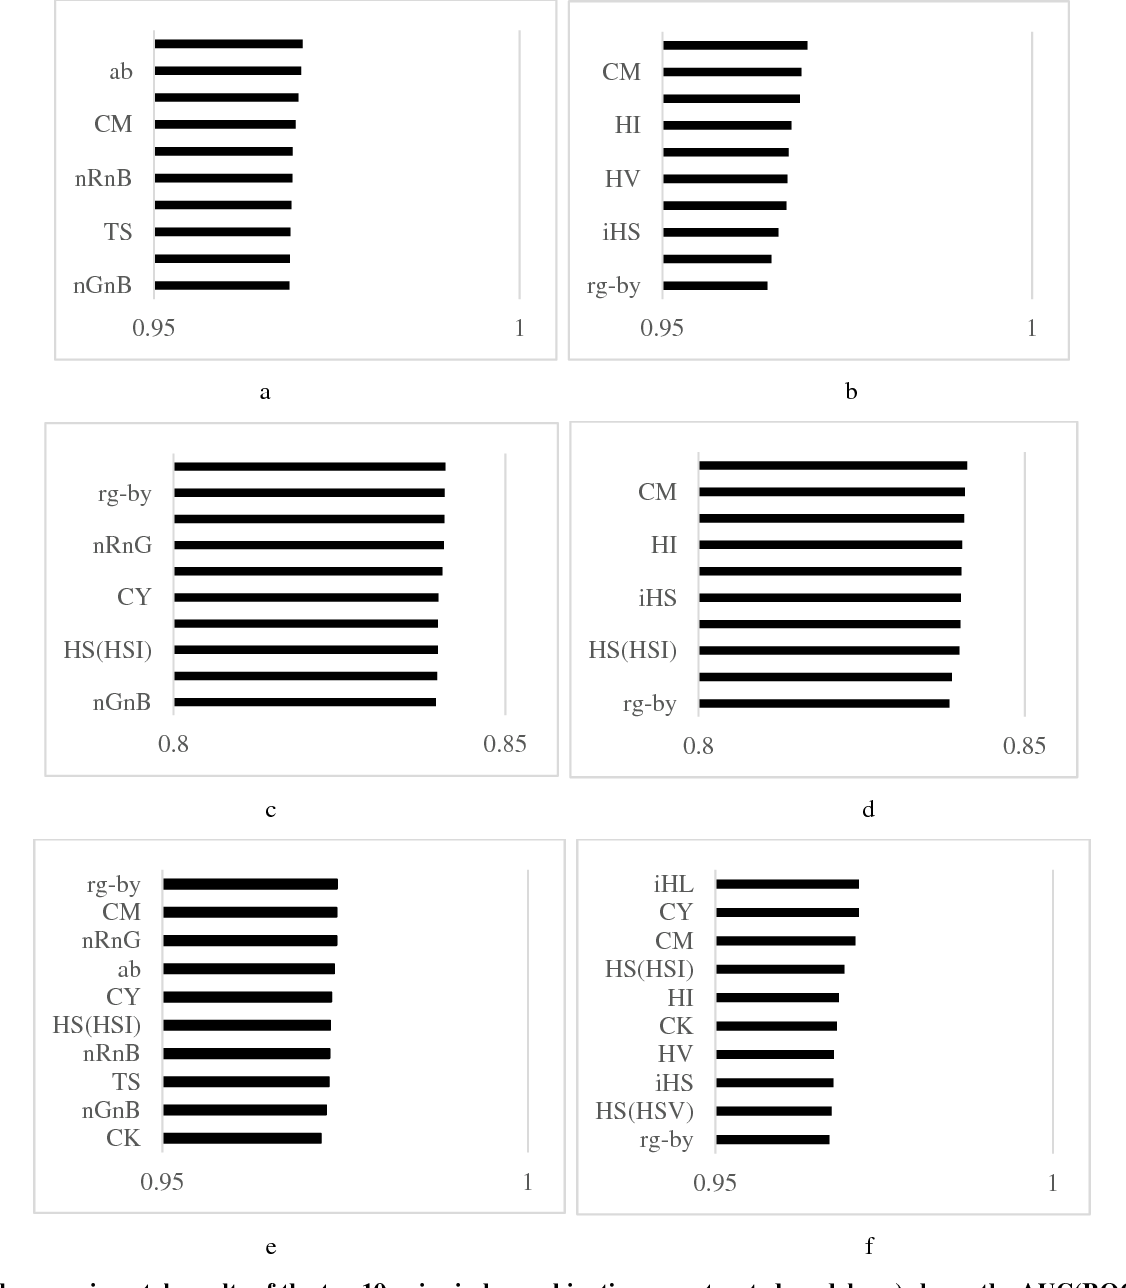 Figure 2. The experimental results of the top 10 pairwisely combinations constructed models. a) shows the AUC(ROC) results of models trained by WSI training images; b) shows the AUC(ROC) results of models trained by TMA training images; c) shows the F-measure results of models trained by WSI images; d) shows the F-measure results of models trained by TMA images; e) shows the AUC(PR) results of models trained by WSI training images; f) shows the AUC(PR) results of models trained by TMA training images.